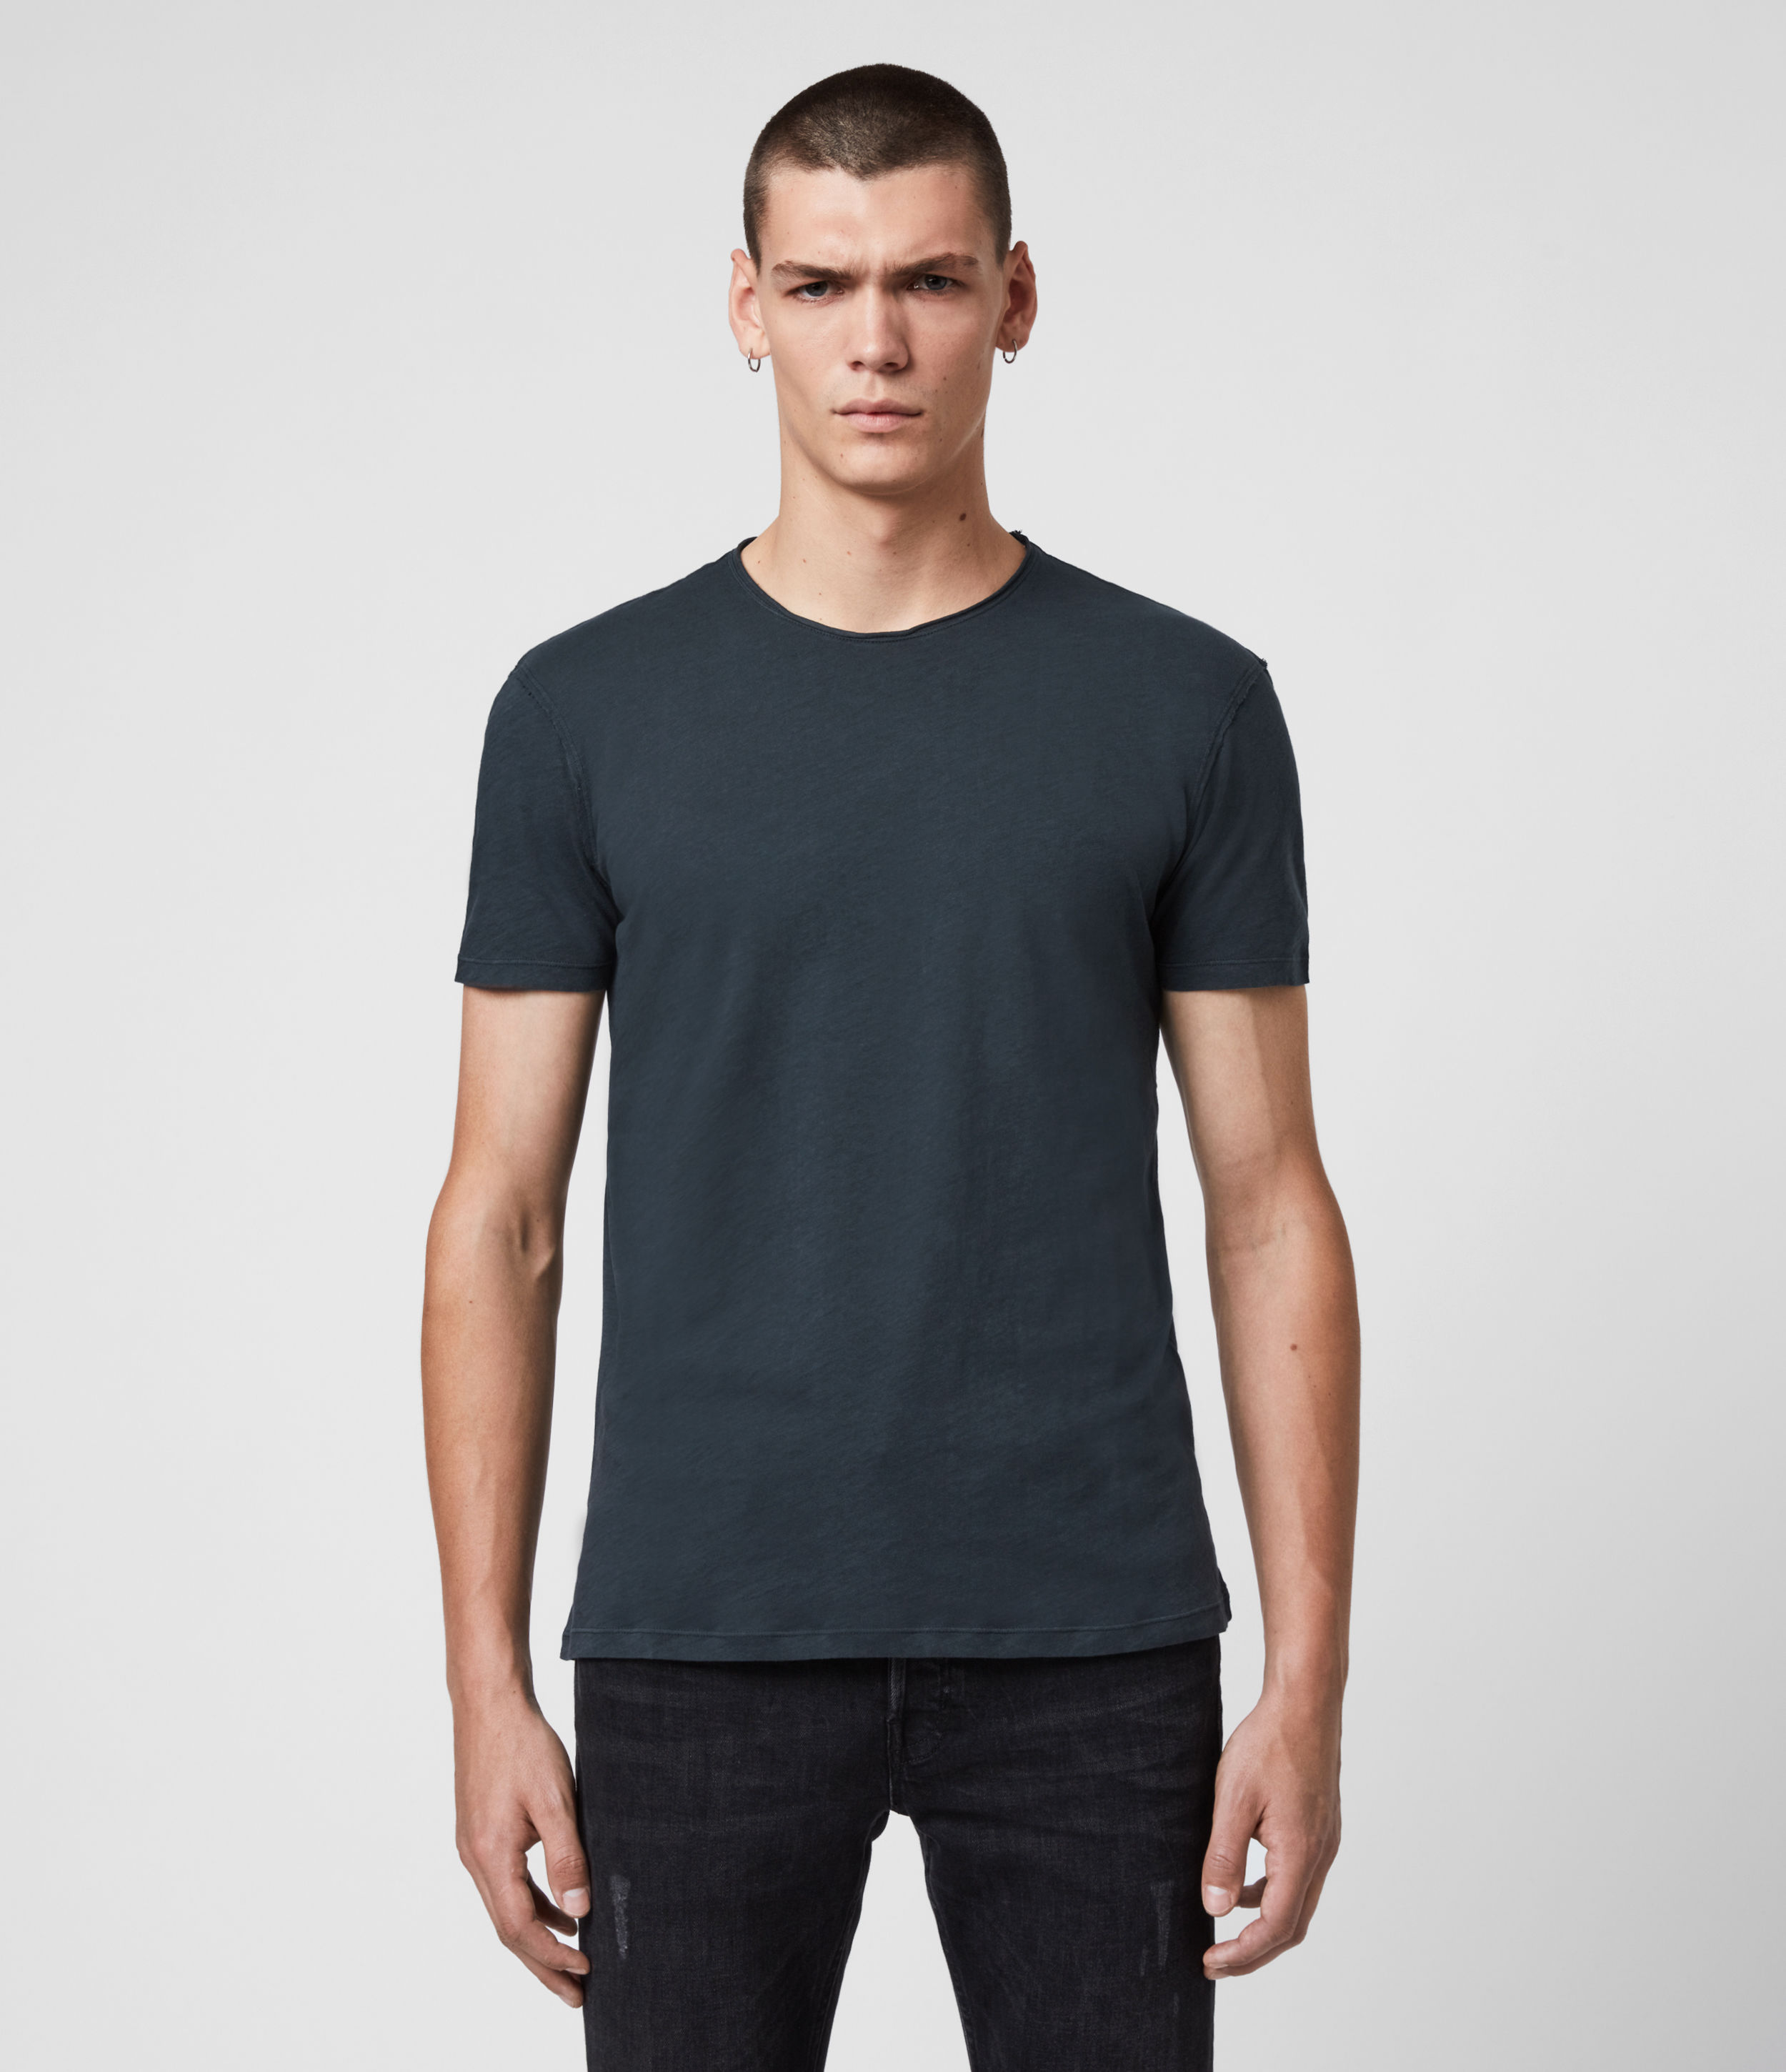 AllSaints Men's Cotton Regular Fit Figure Crew T-Shirt, Blue, Size: XL